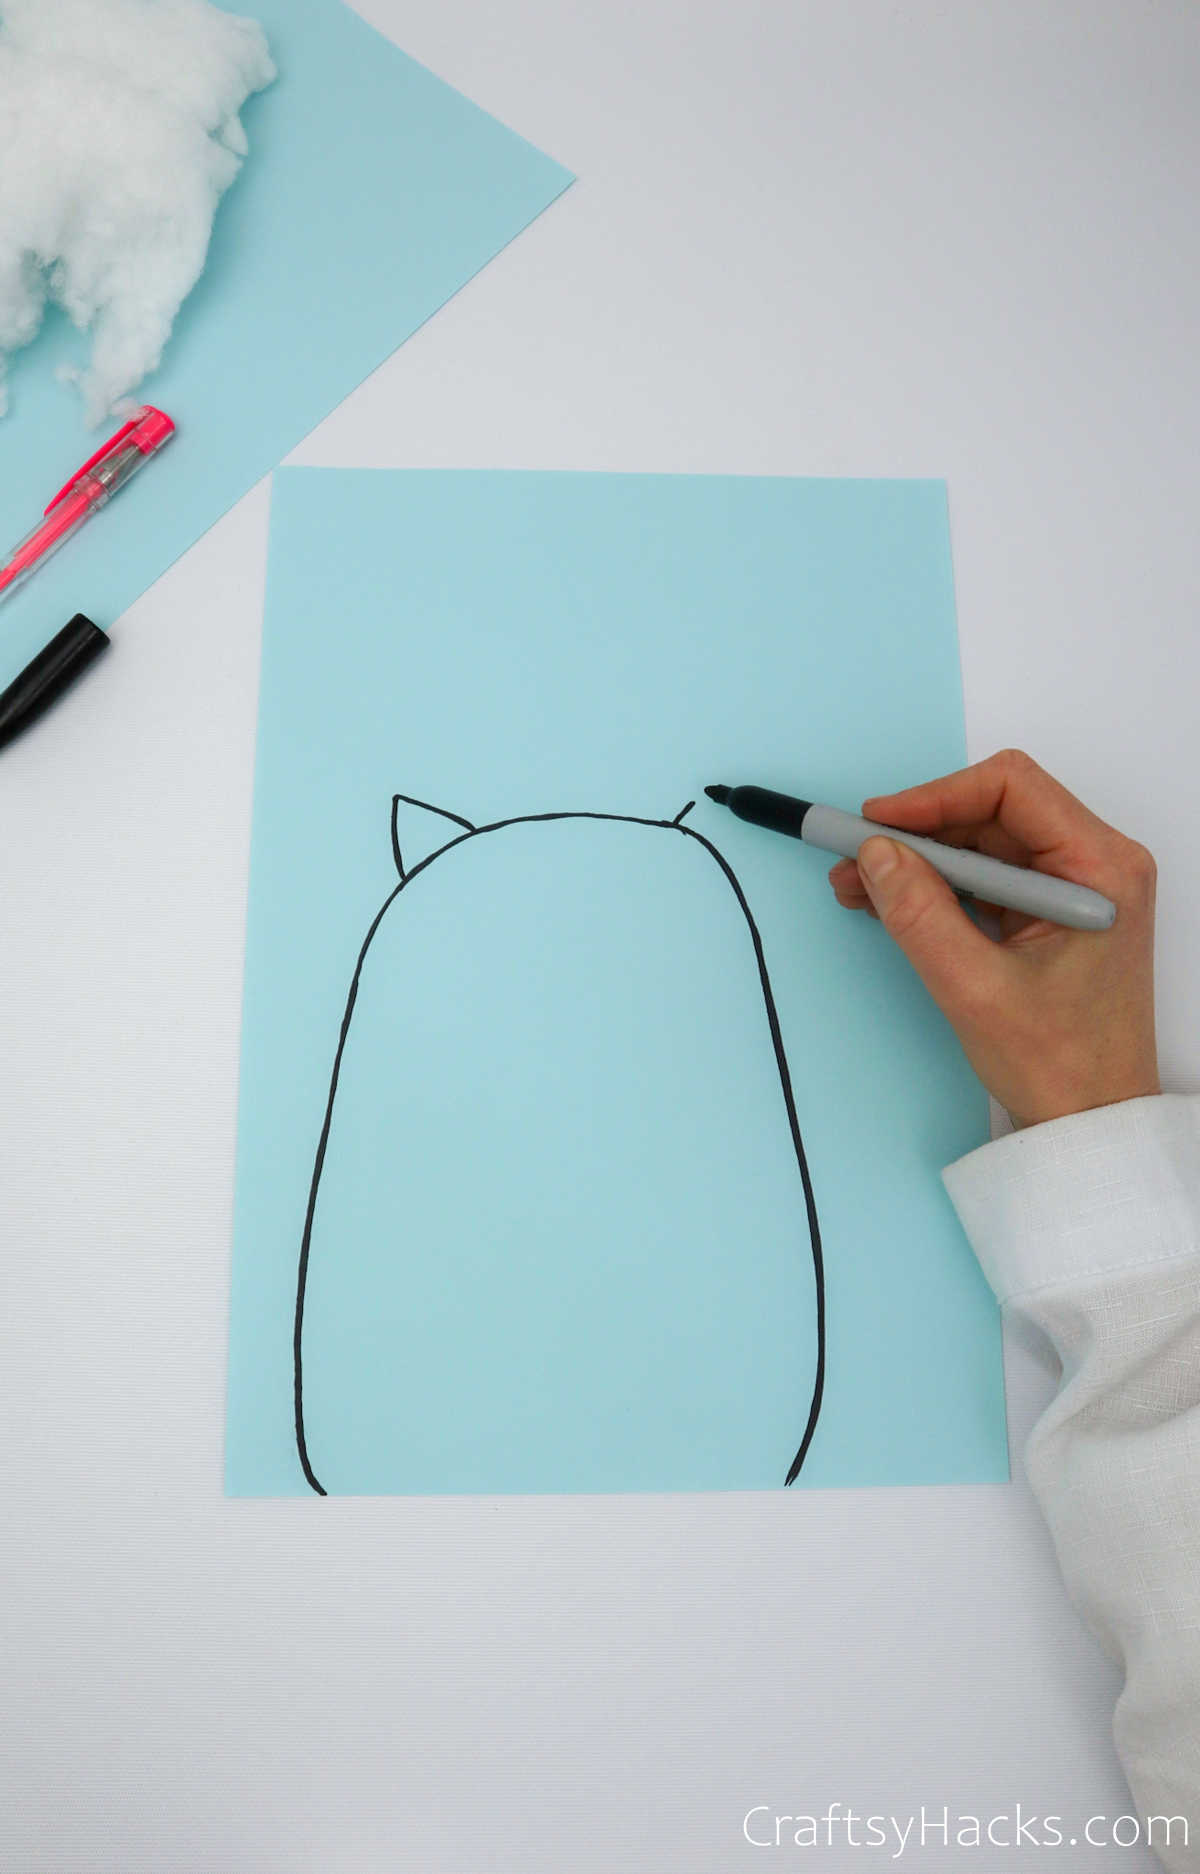 drawing cat shape on paper